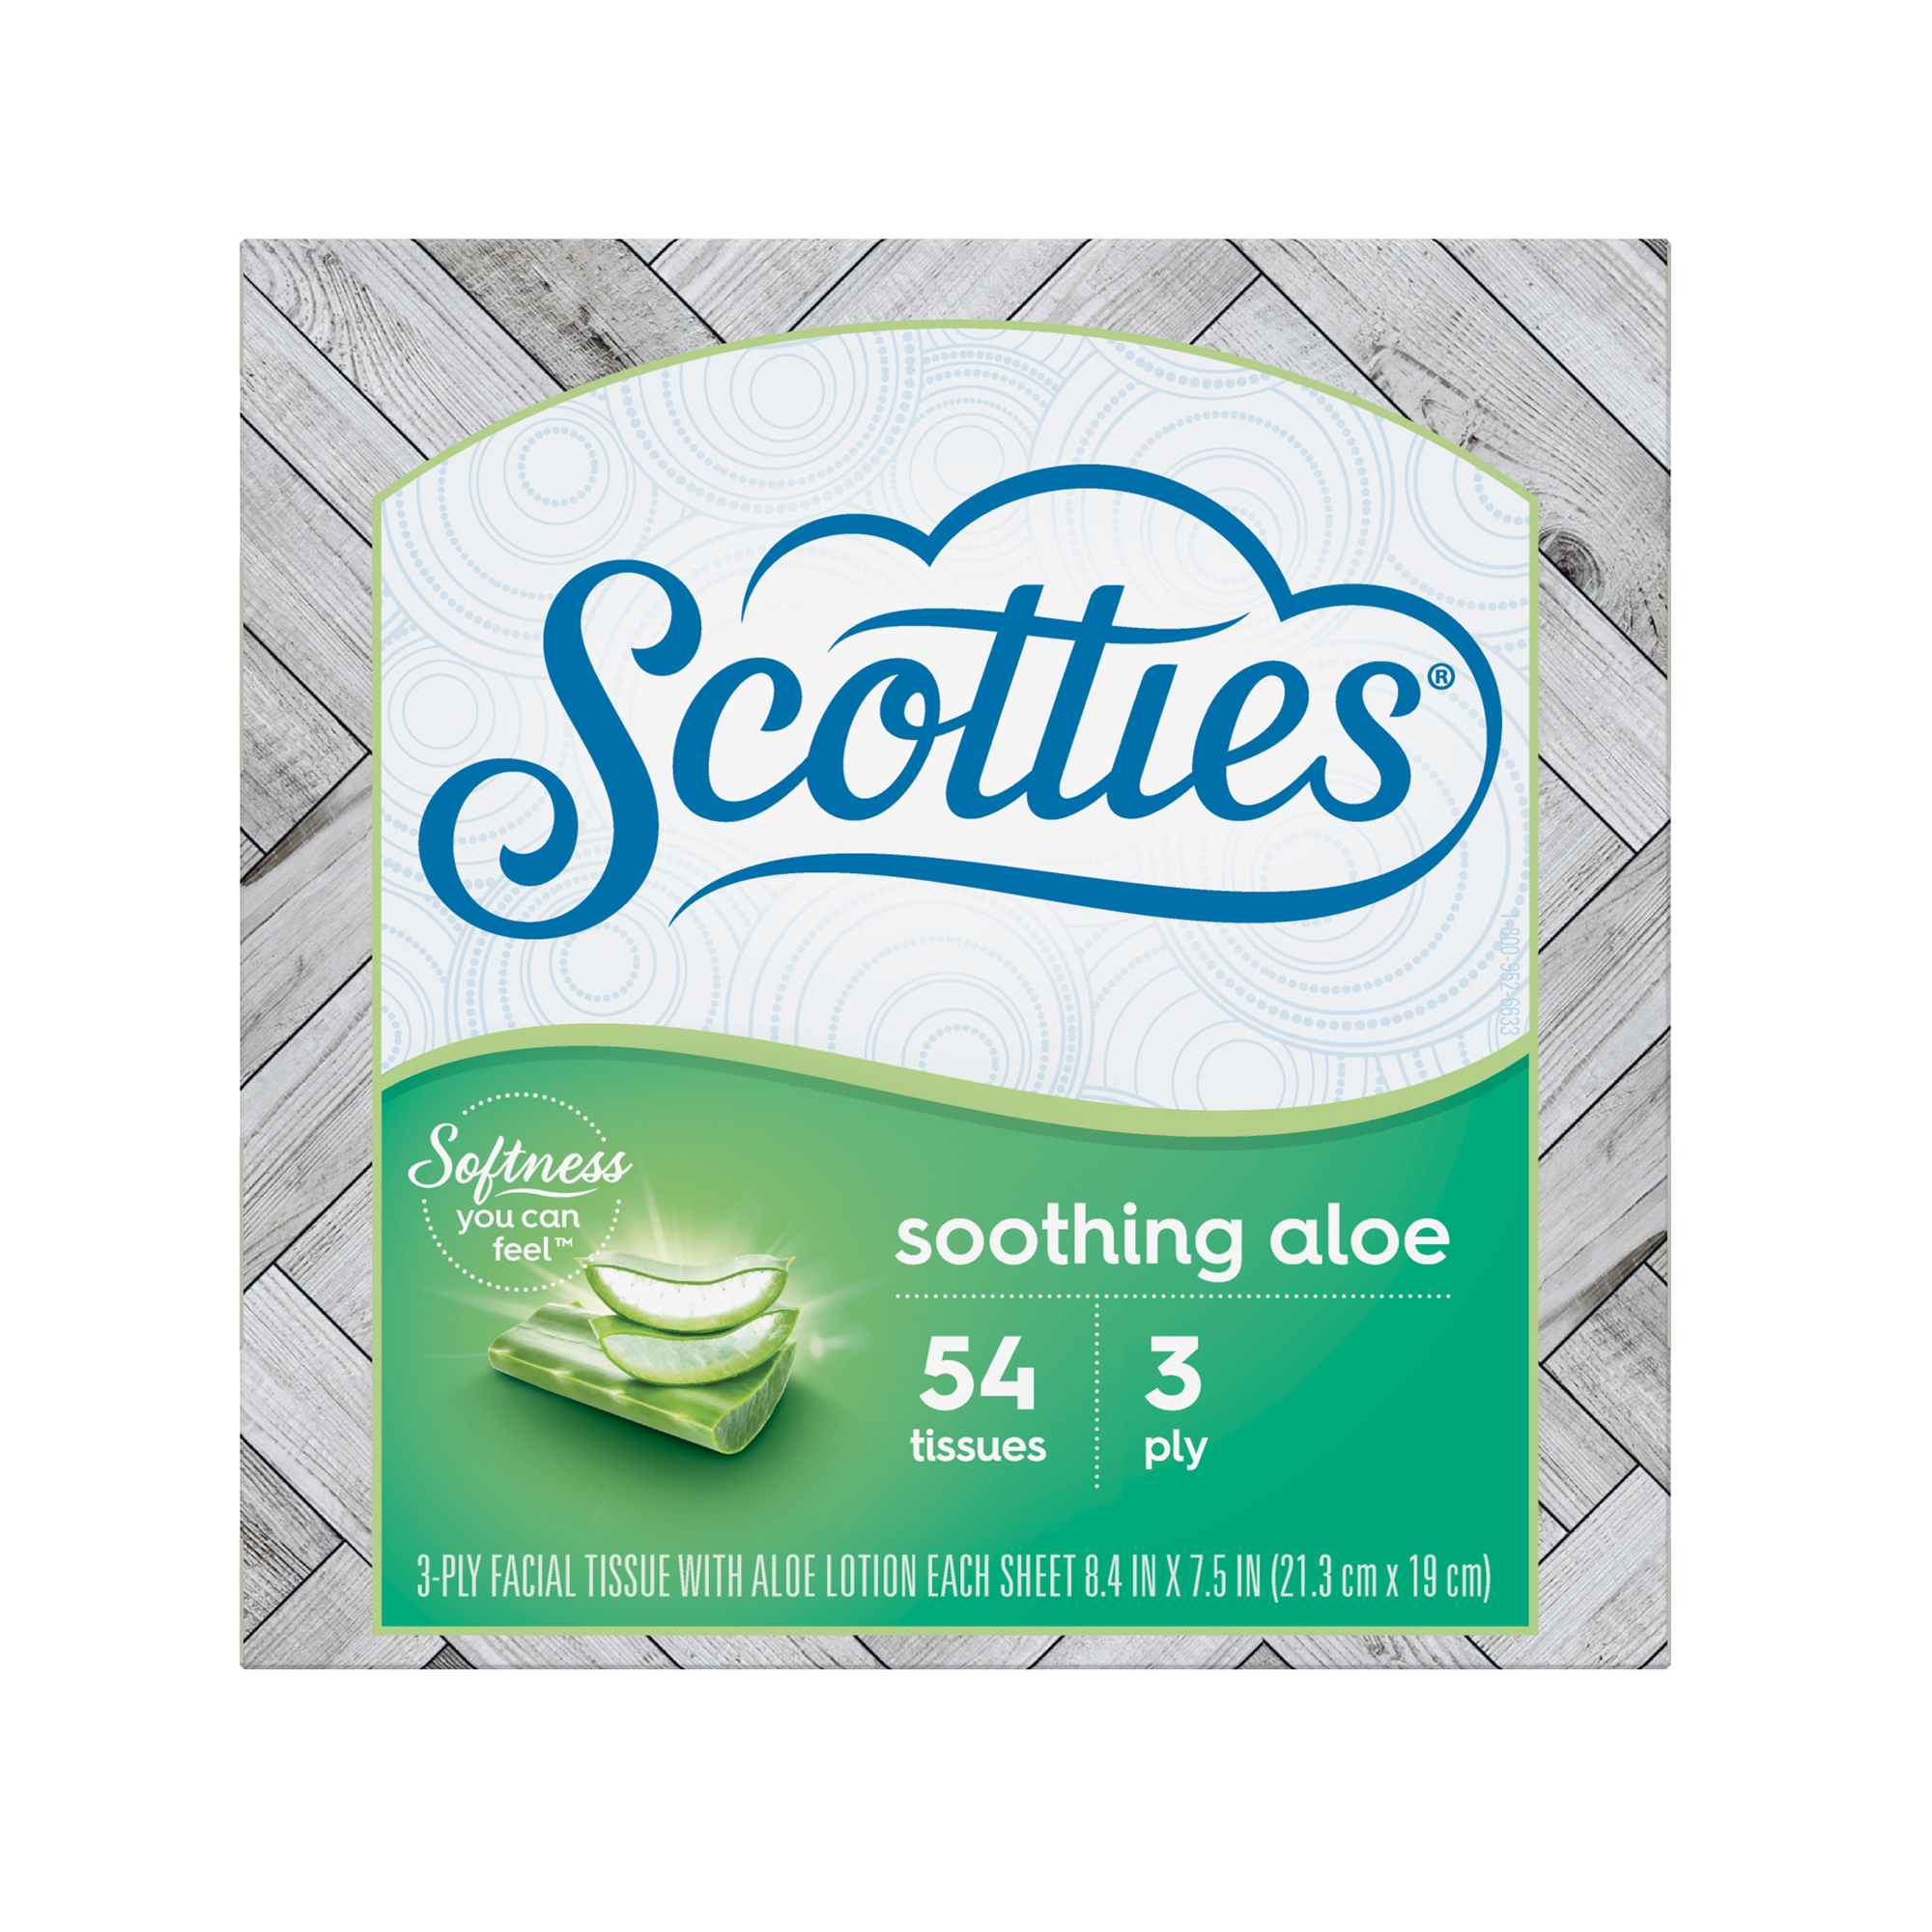 Scotties Soothing Aloe 3-Ply Facial Tissues for Sensitive Skin, 1 Pull-out Style Box, 54 Tissues per Box